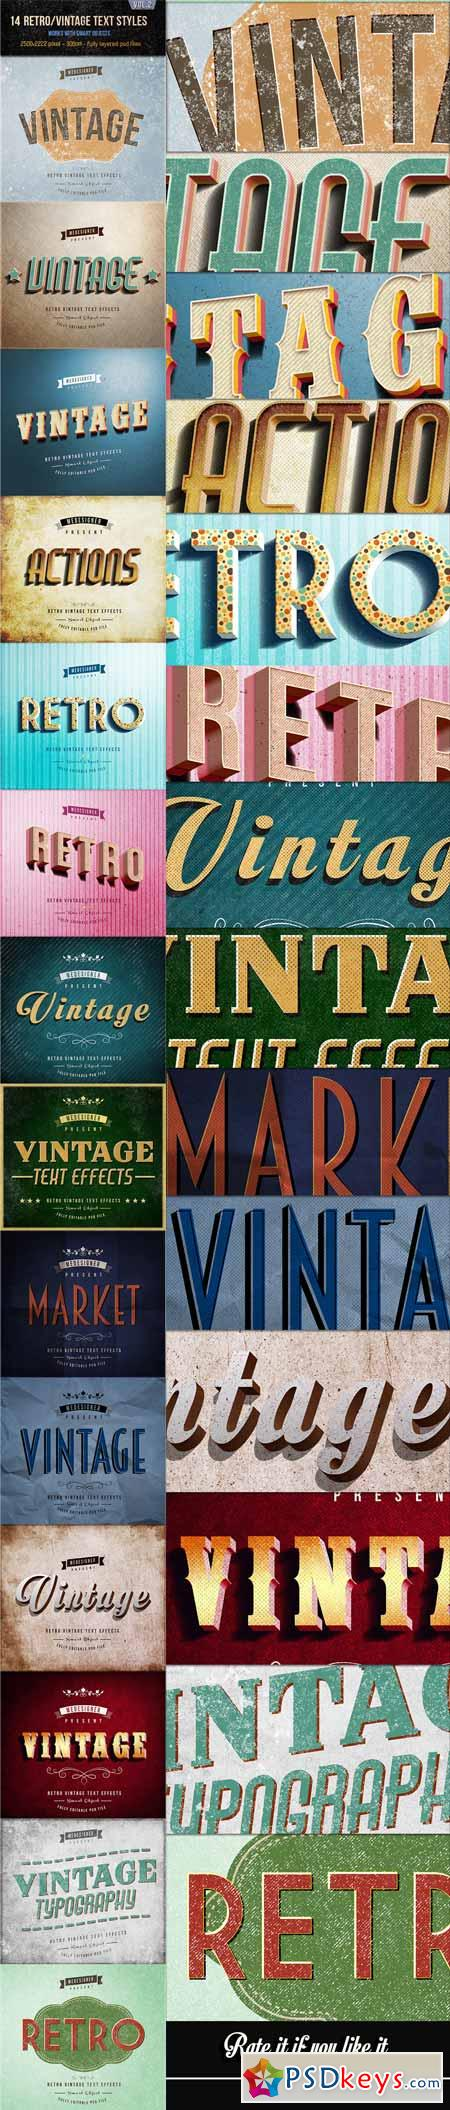 14 Retro Vintage Text Effects V.2 12821635